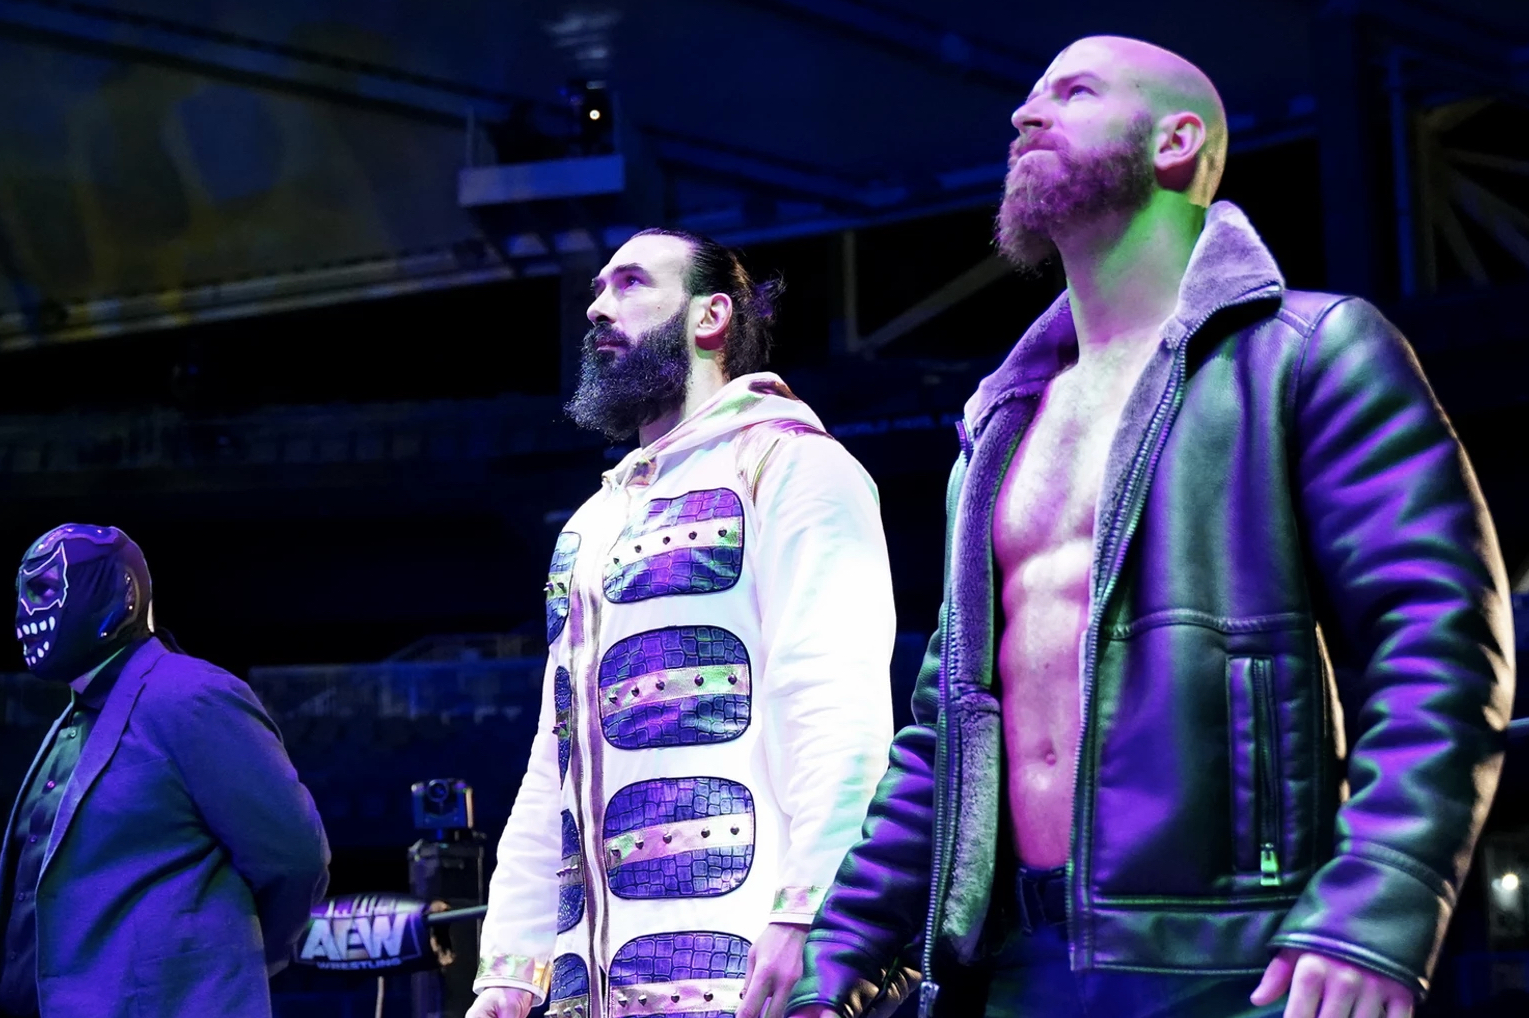 Aew S Brodie Lee Says Wwe Offered Ungodly Money In Contract Talks Bleacher Report Latest News Videos And Highlights